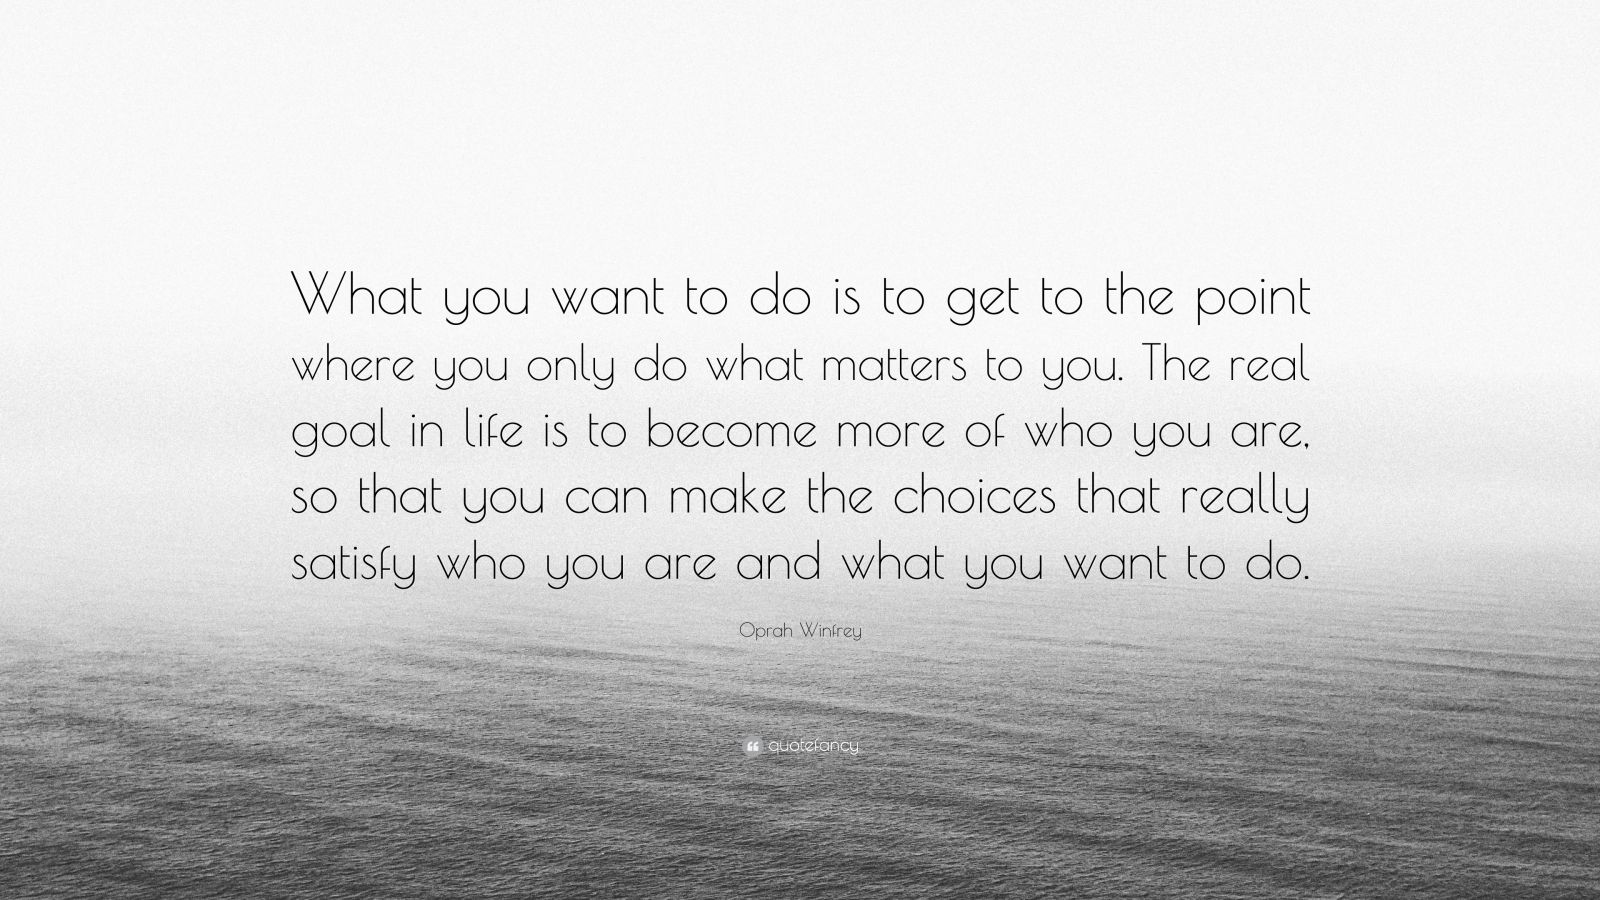 """Oprah Winfrey Quote: """"What you want to do is to get to the point where you only do what matters to you. The real goal in life is to become more of who you are, so that you can make the choices that really satisfy who you are and what you want to do."""""""